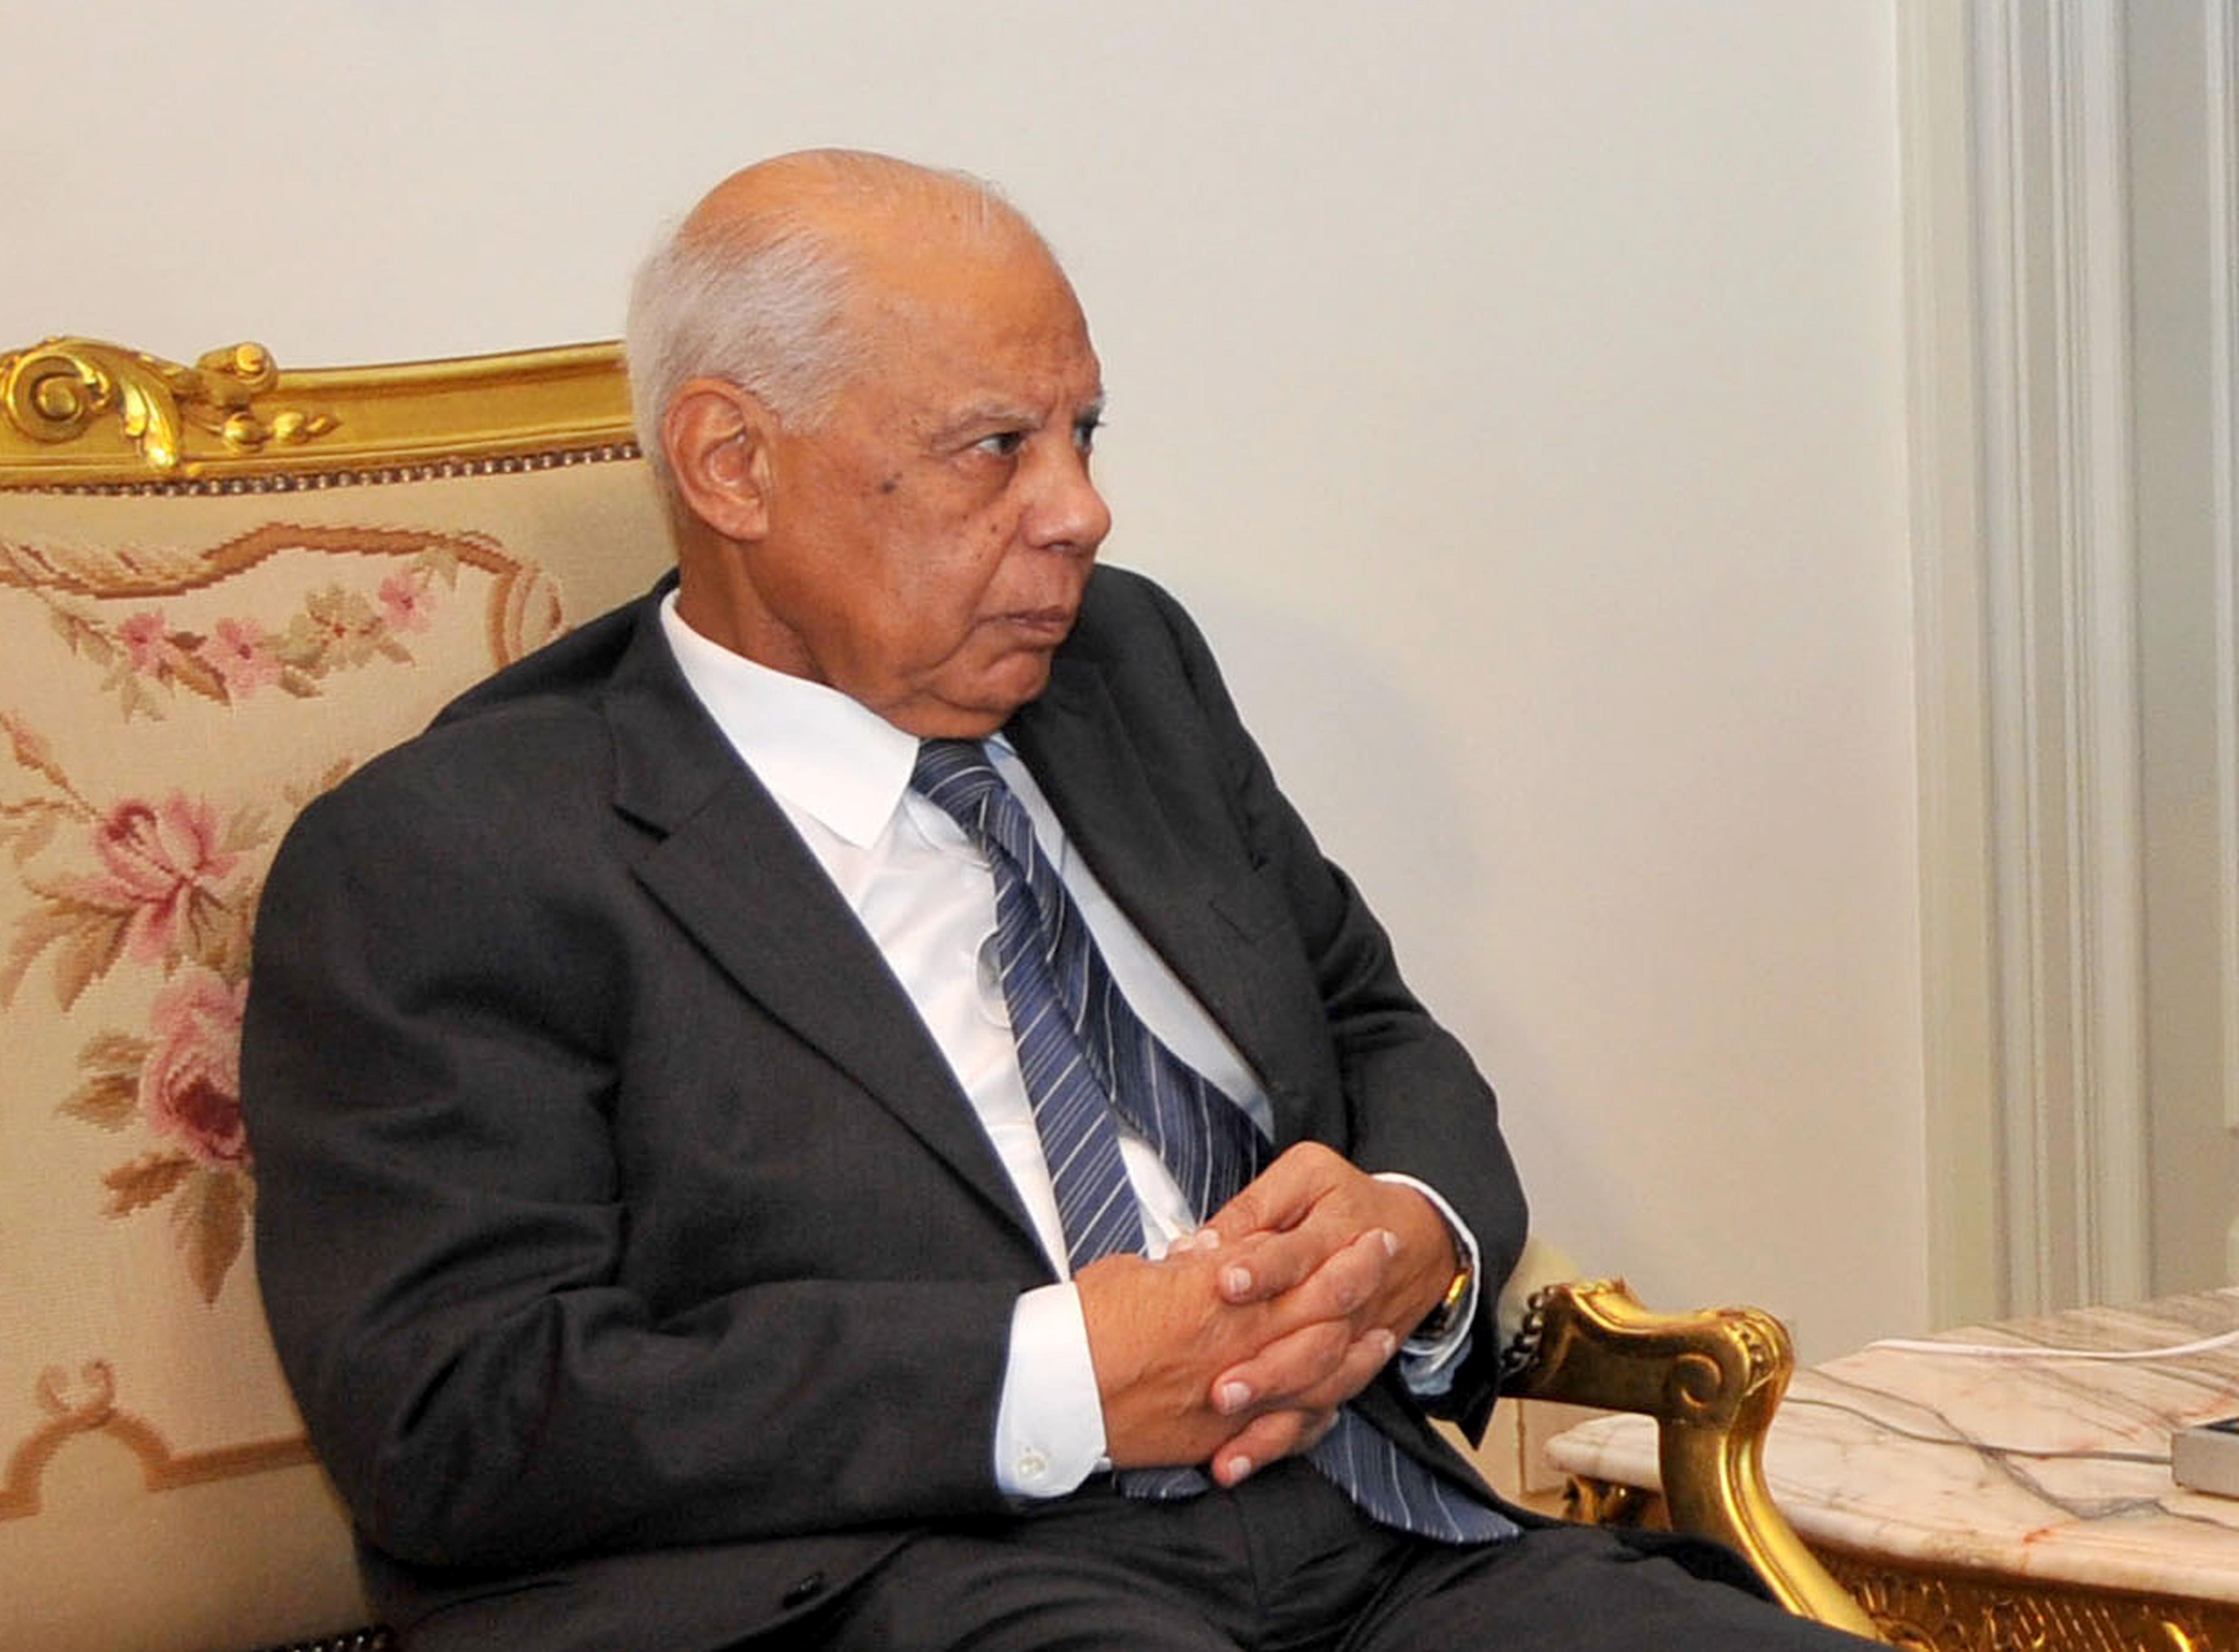 FILE - In this Tuesday, July 9, 2013 file photo released by the Egyptian Presidency, Hazem el-Beblawi meets with interim President Adly Mansour, unseen, in Cairo, Egypt. Egypt's interim president on Tuesday swore in the first Cabinet since the military ousted the Islamist president, giving members of the country's liberal movements key positions. The Cabinet includes three women. The new government is led by Prime Minister Hazem el-Beblawi, an economist. Army chief Gen. Abdel-Fattah el-Sissi, who ousted Mohammed Morsi on July 3, retains his post as defense minister and also took the position of first deputy prime minister, an additional title given to defense ministers in the past.(AP Photo/Egyptian Presidency, File)